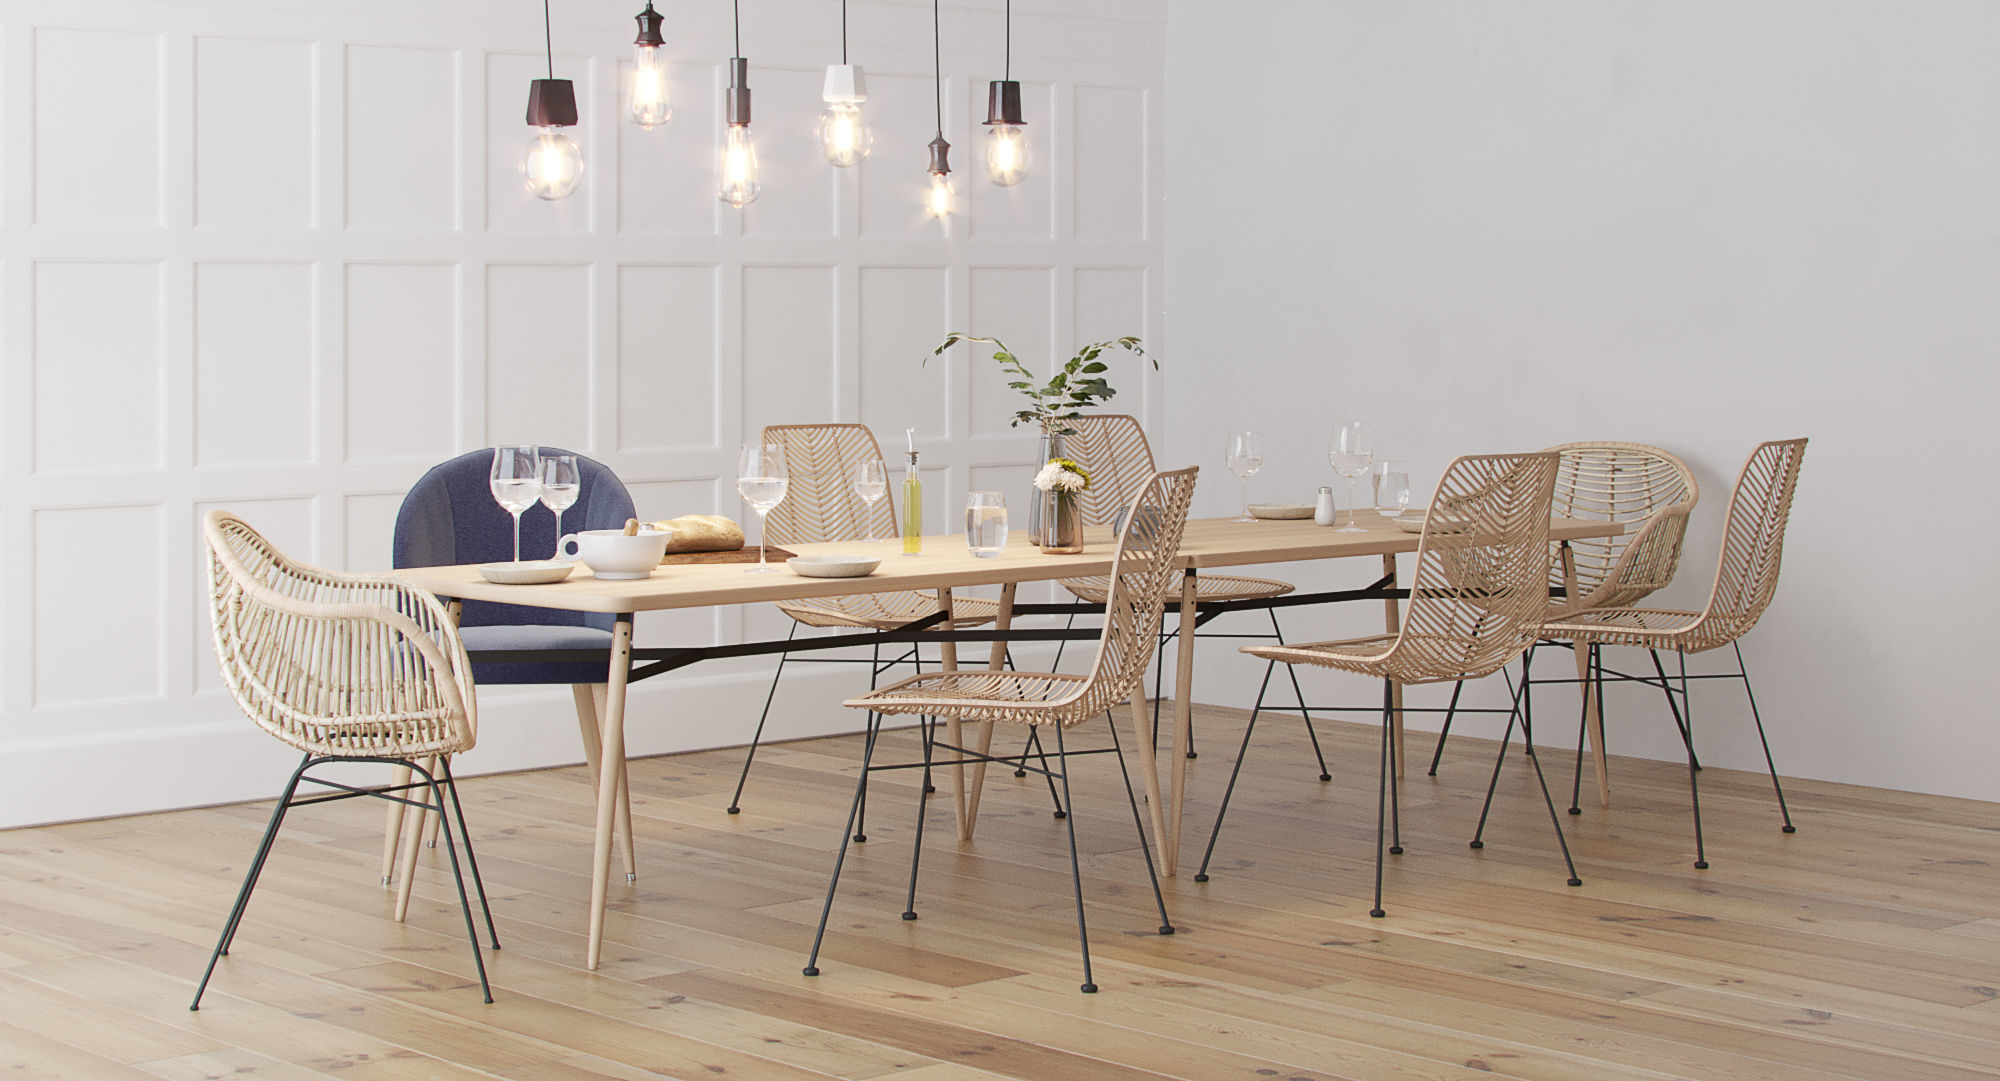 Scandinavian Style Interior Dining Table